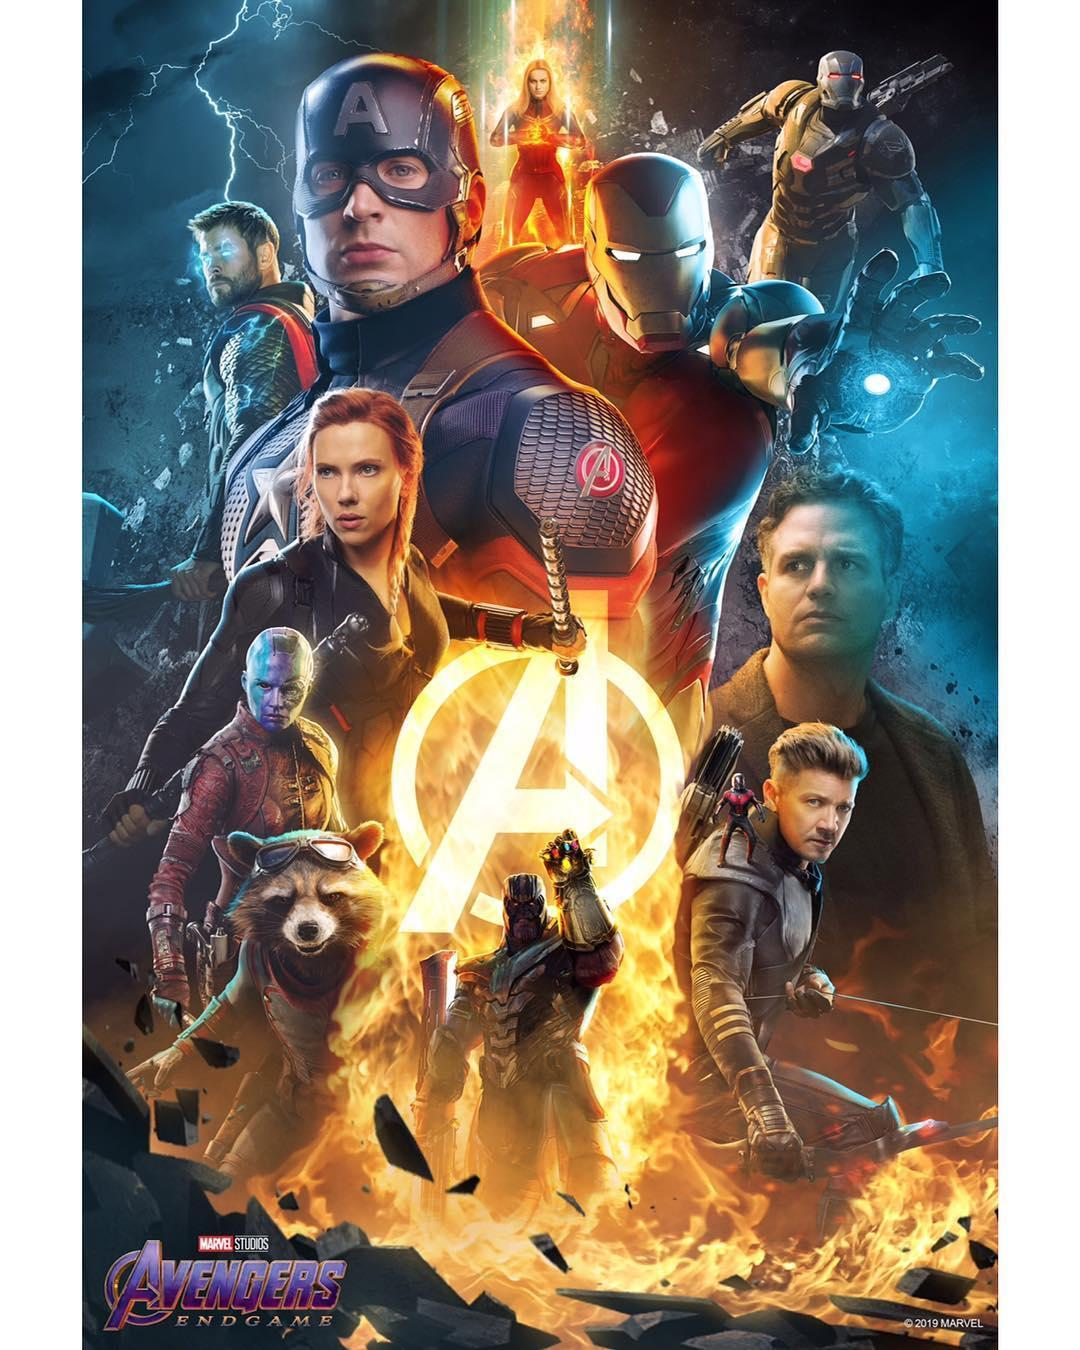 Avengers Endgame Wallpapers For Android Apk Download